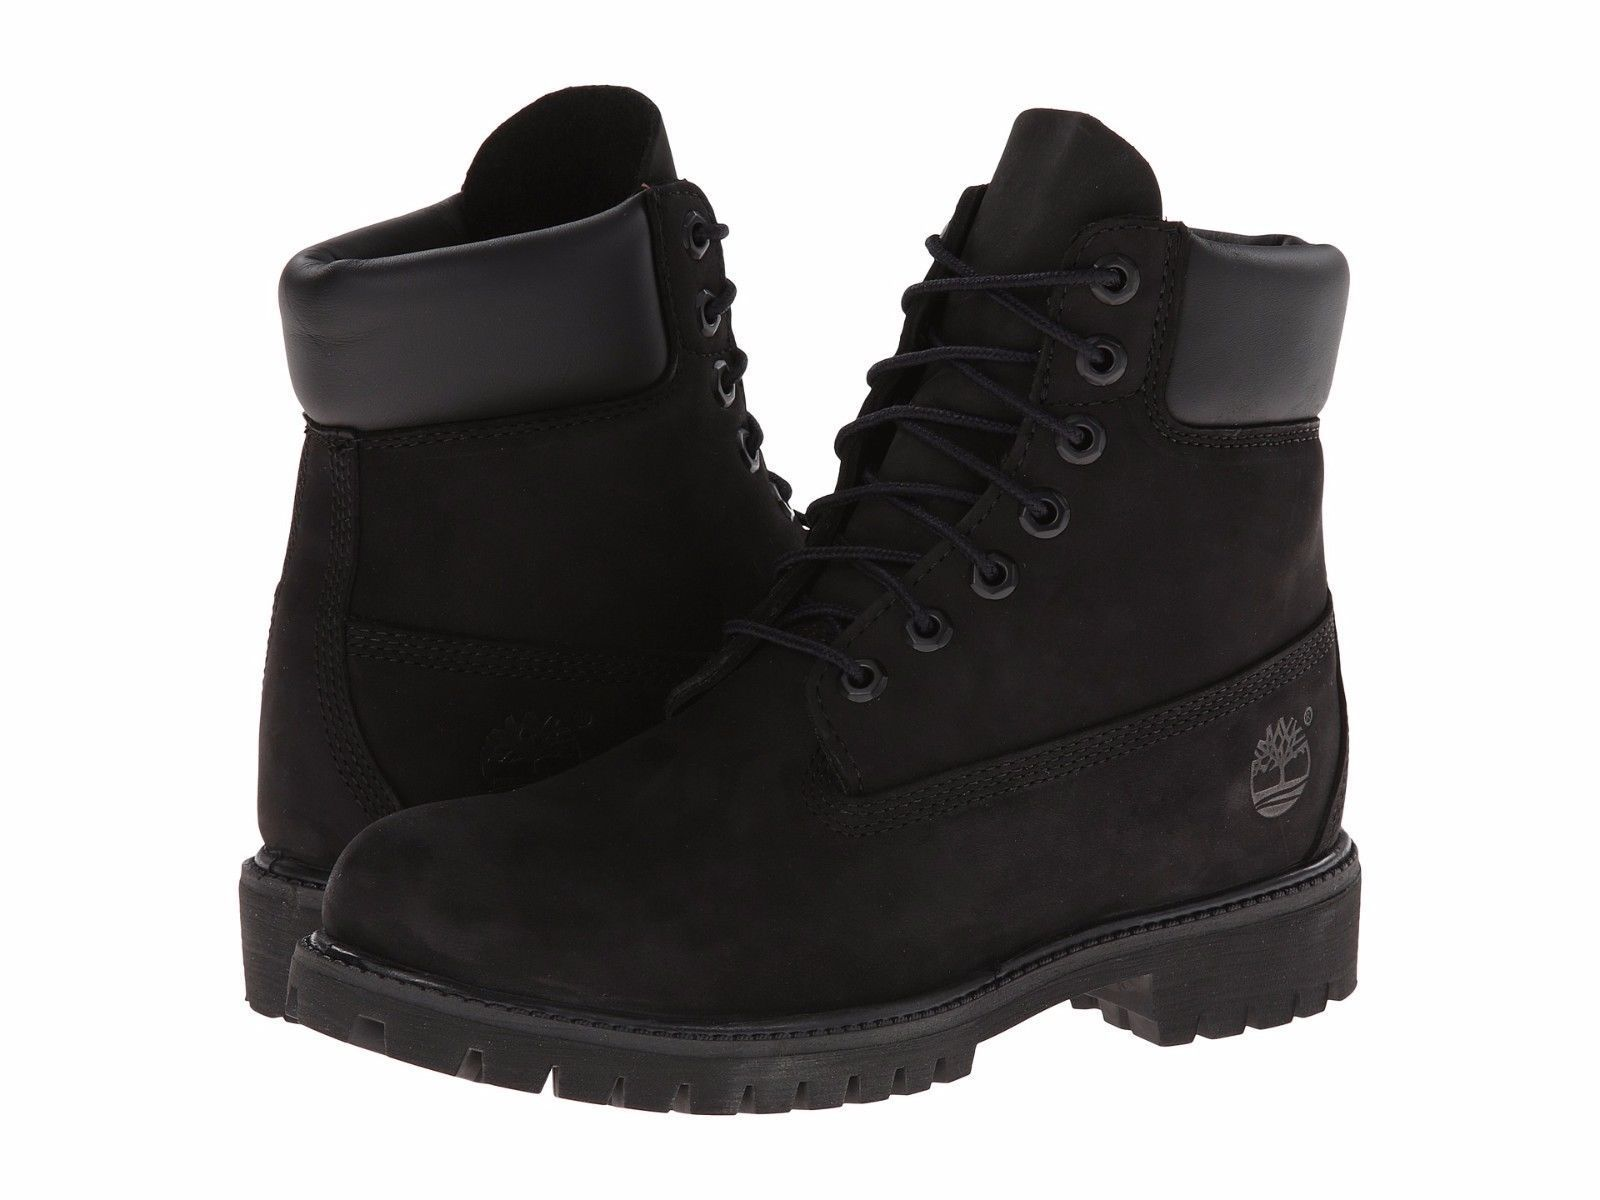 93ea6dc1010d Women S Shoe Timberland 6 Inch Premium Waterproof Lace Up Boots Black 8658A